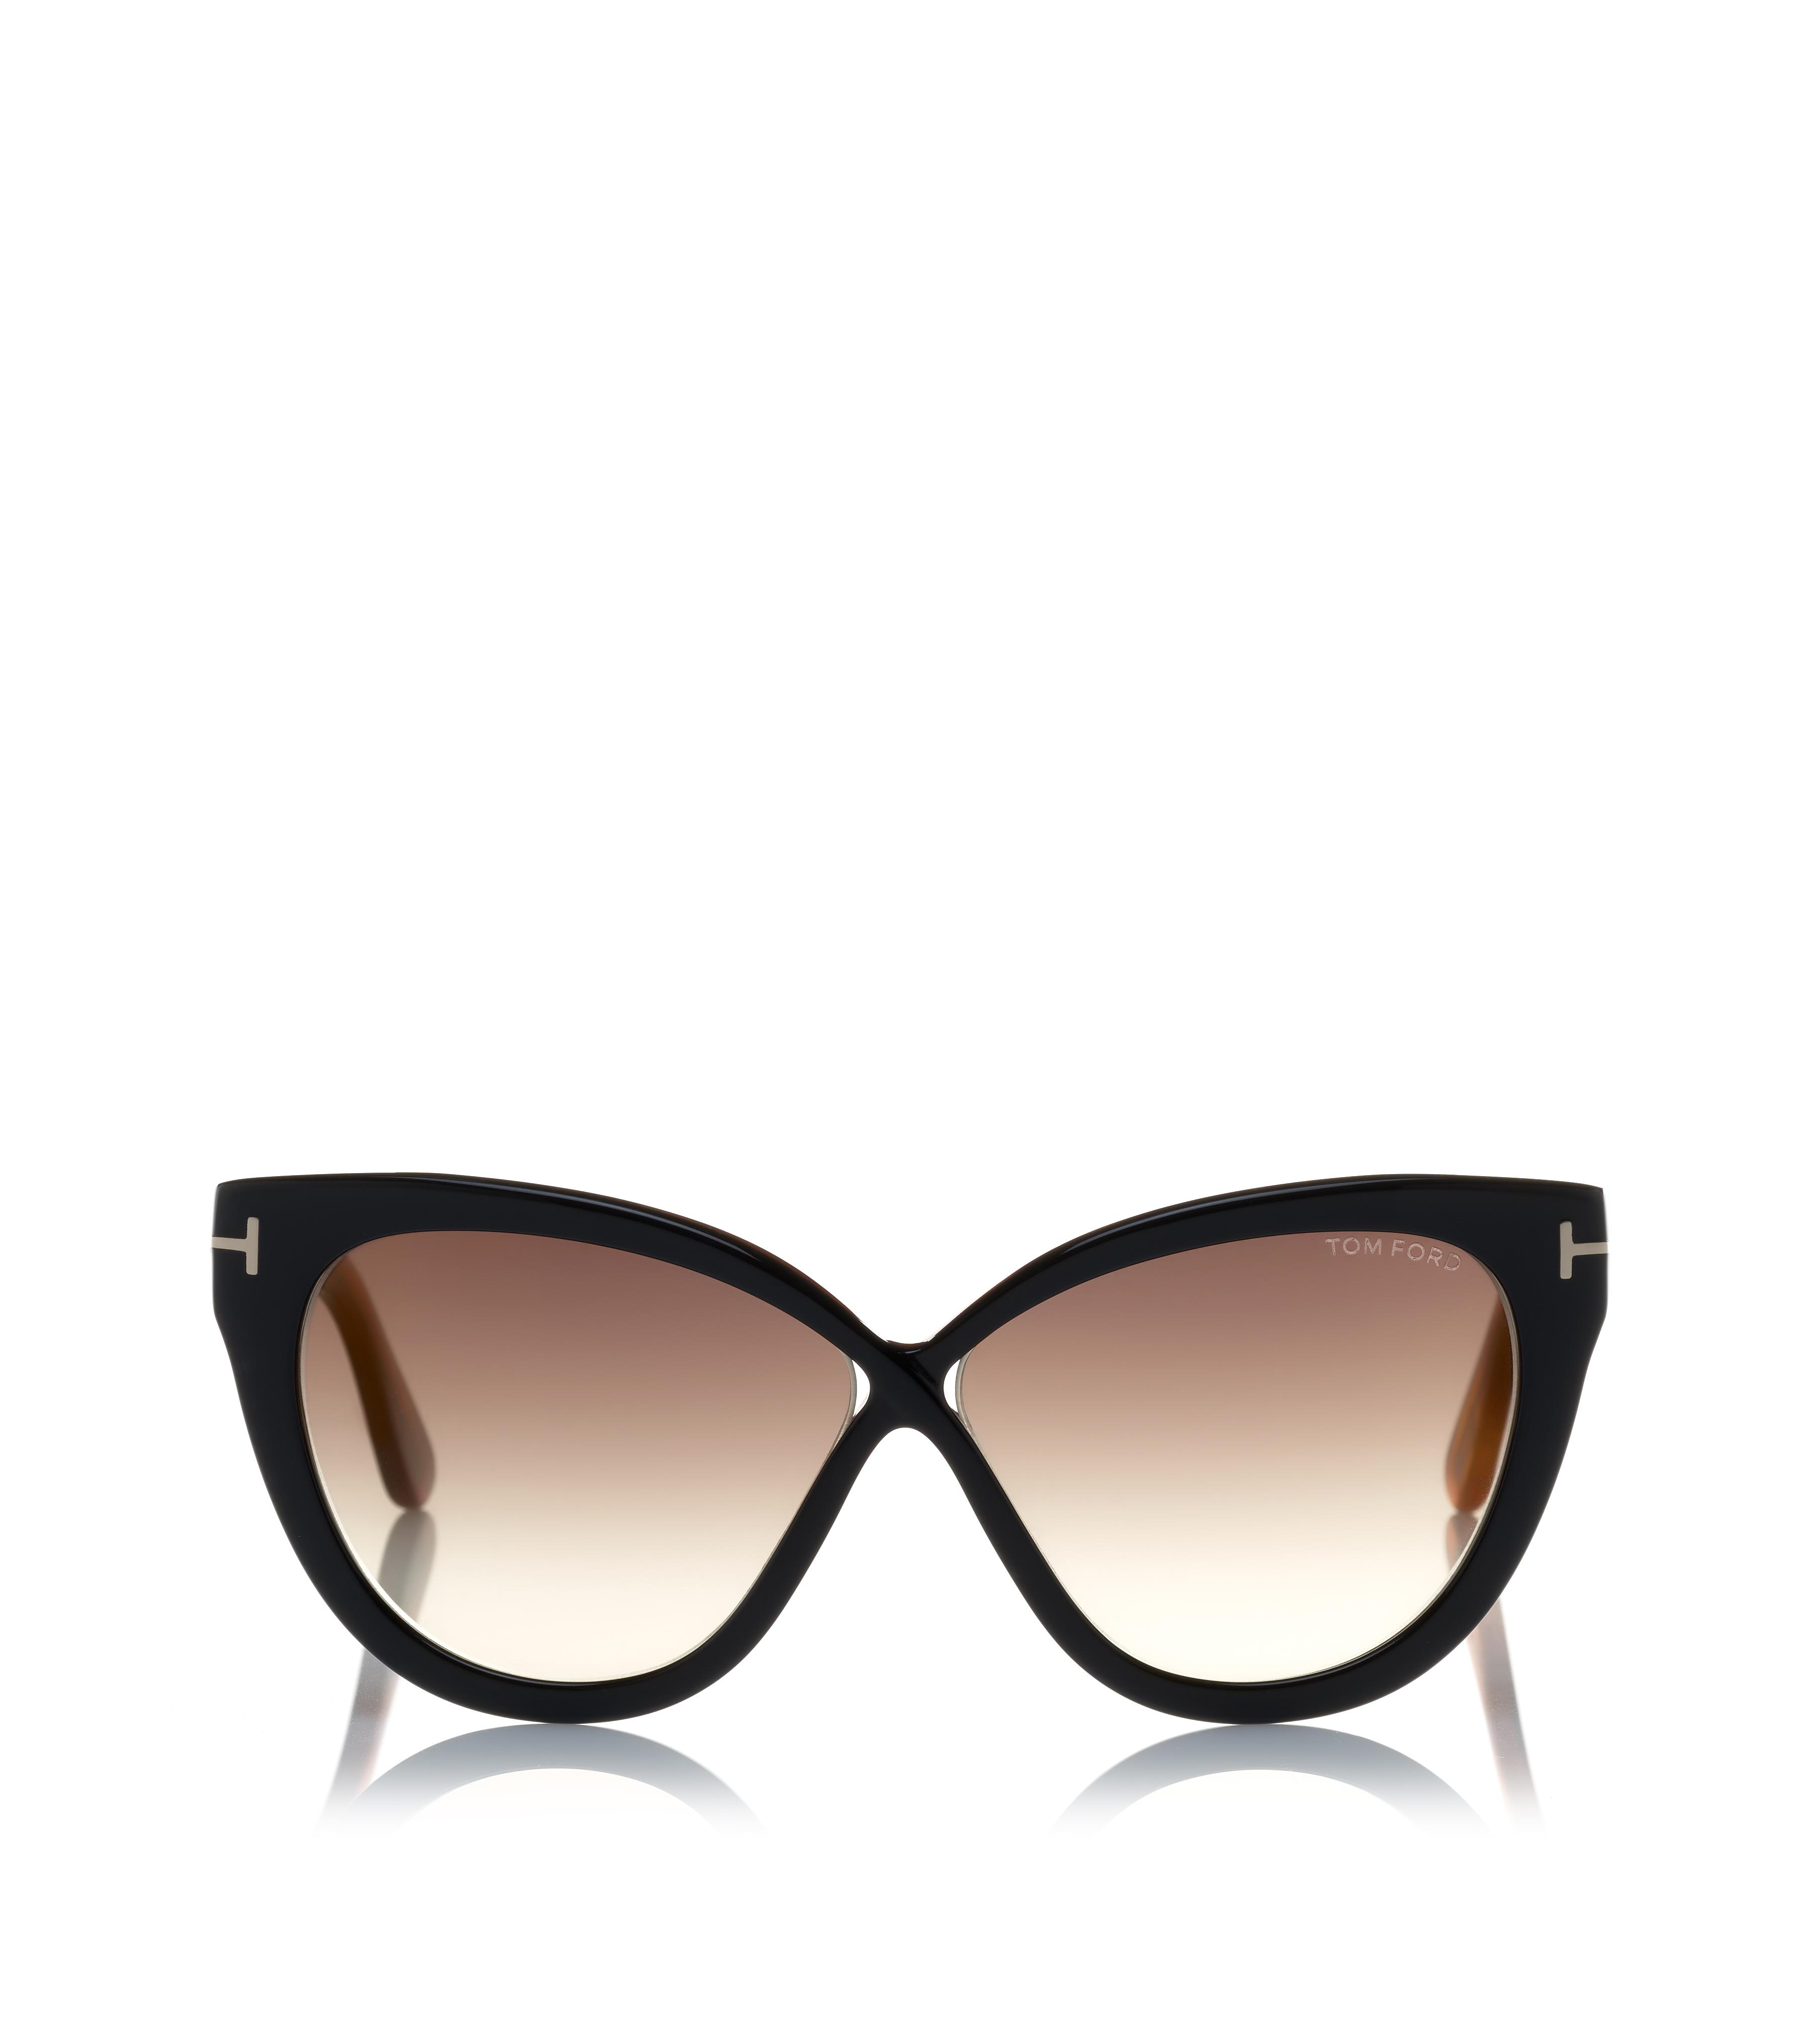 Why Are My Glasses Frames Turning White : Sunglasses - Sunglasses by TOM FORD - Designer Sunglasses ...